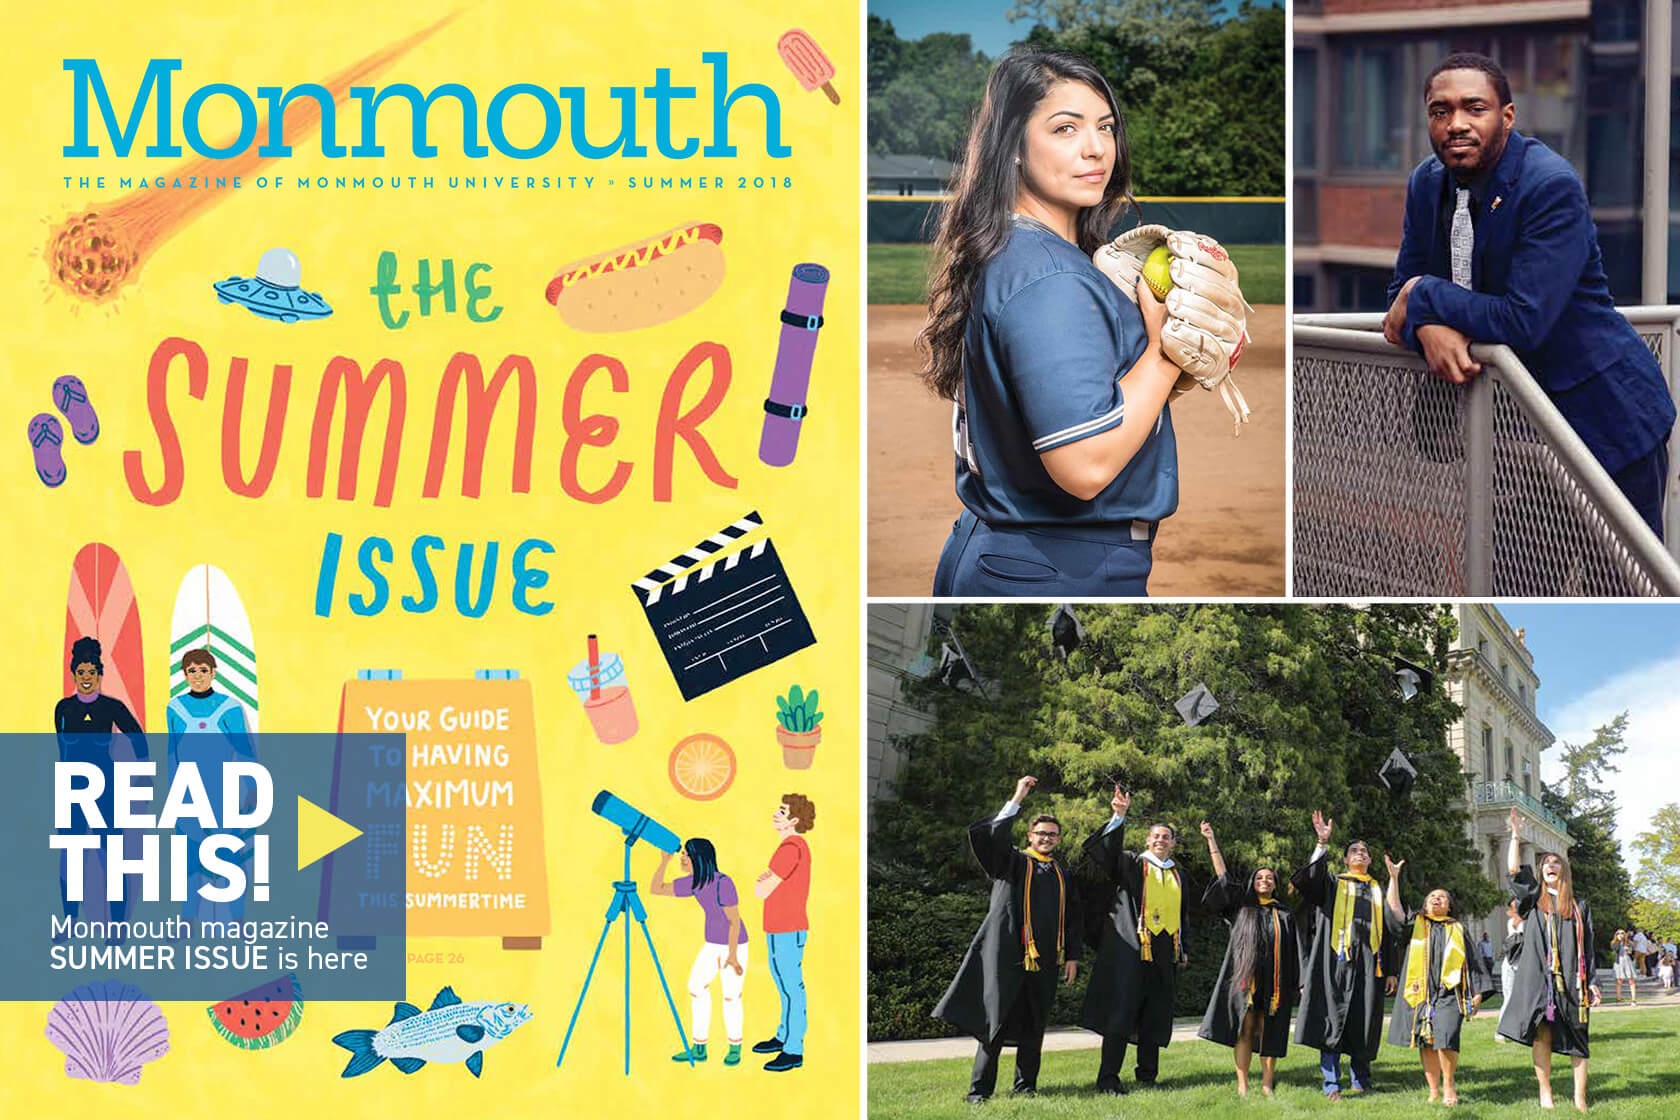 Read this, Monmouth magazine summer issue is here